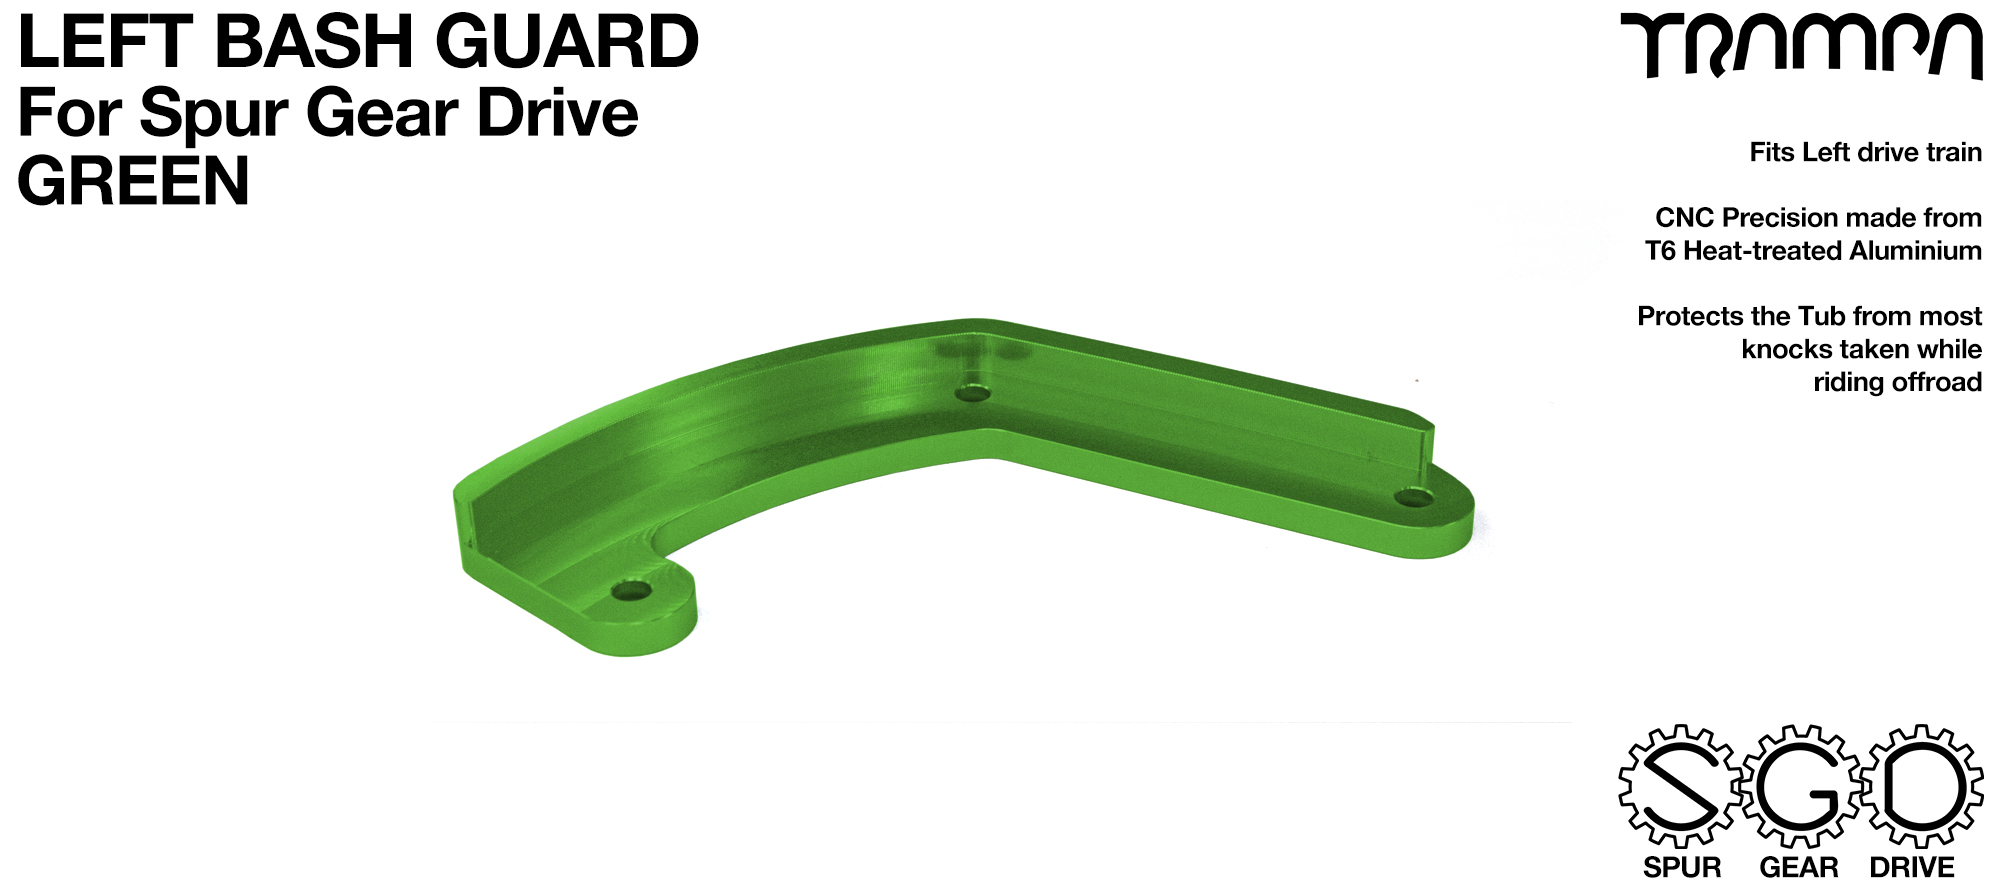 GREEN Bash Guards